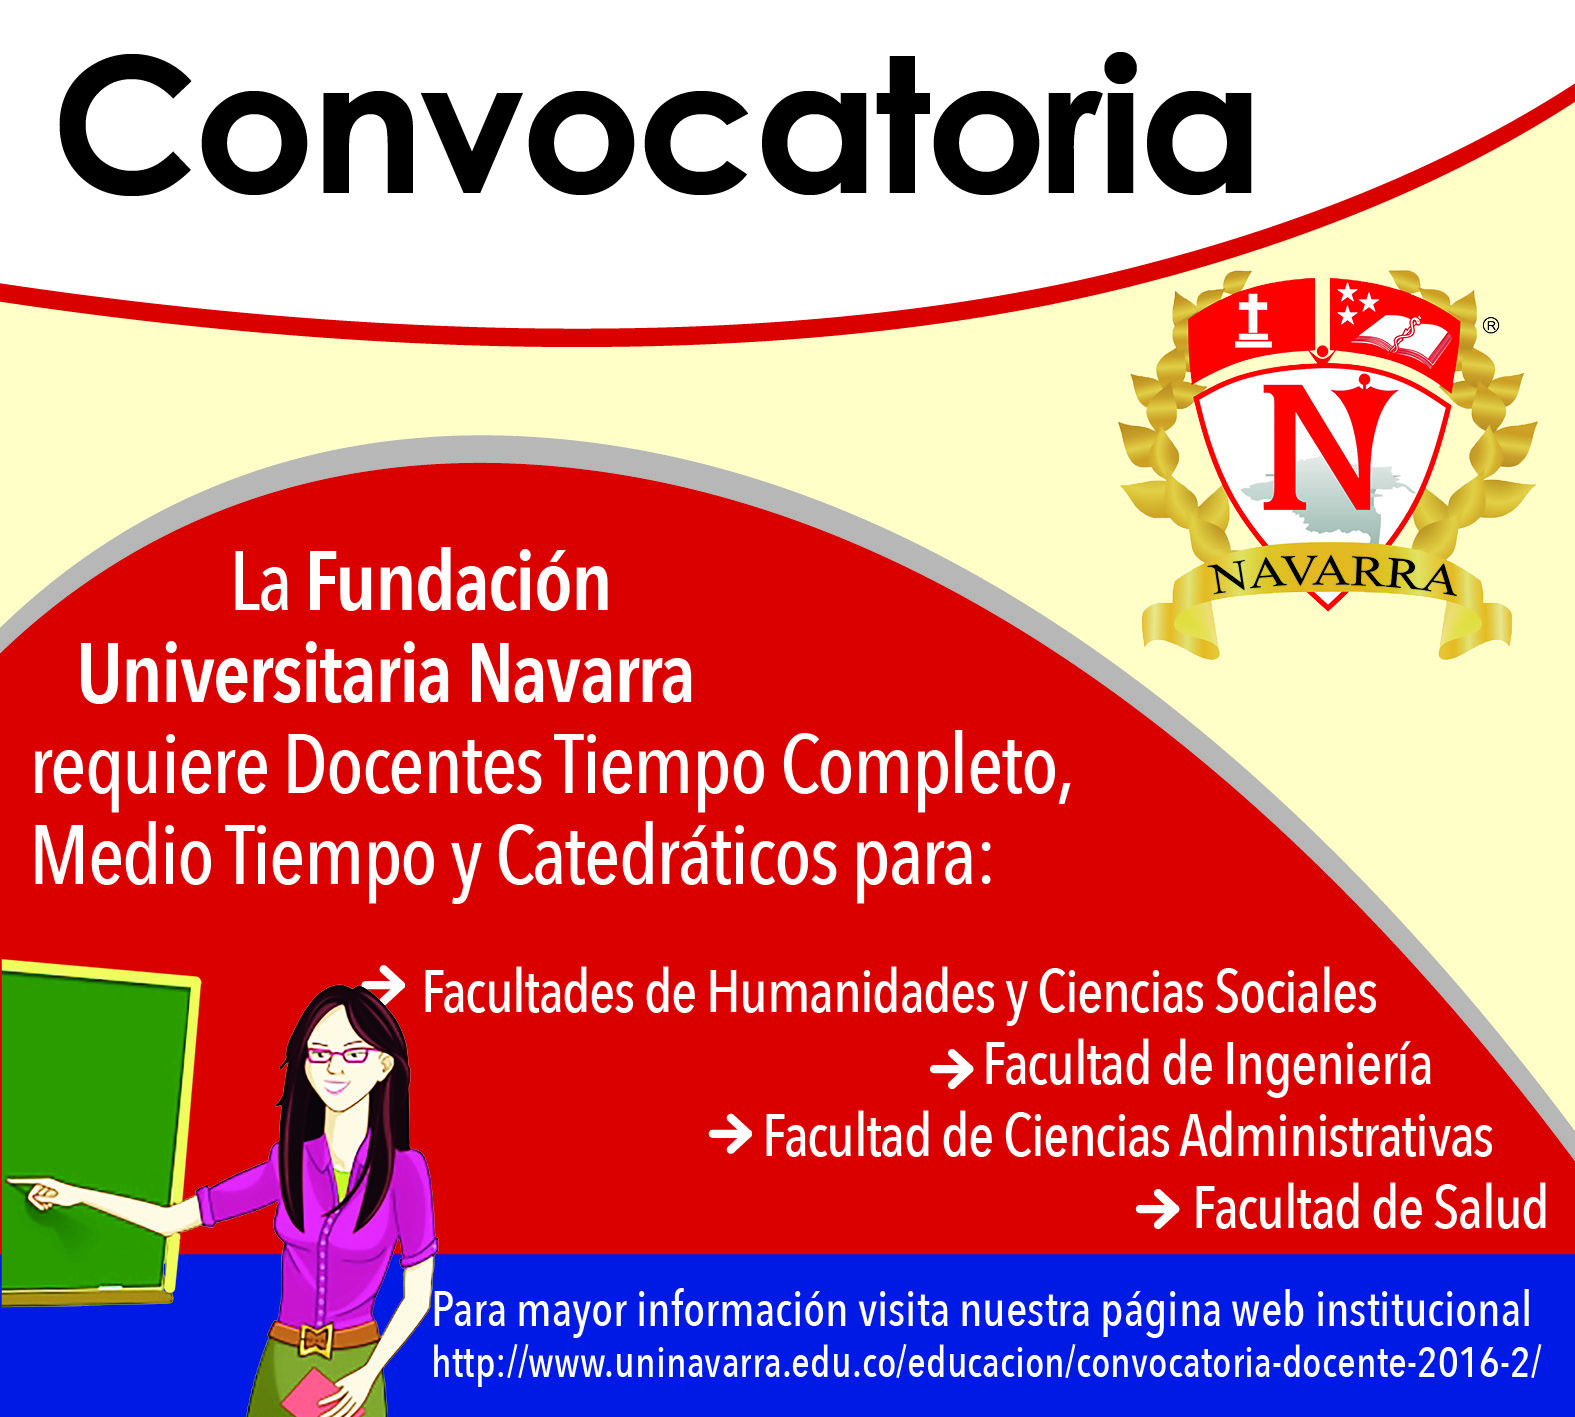 Convocatoria docente 2016 2 uninavarra for Convocatoria de docentes 2016